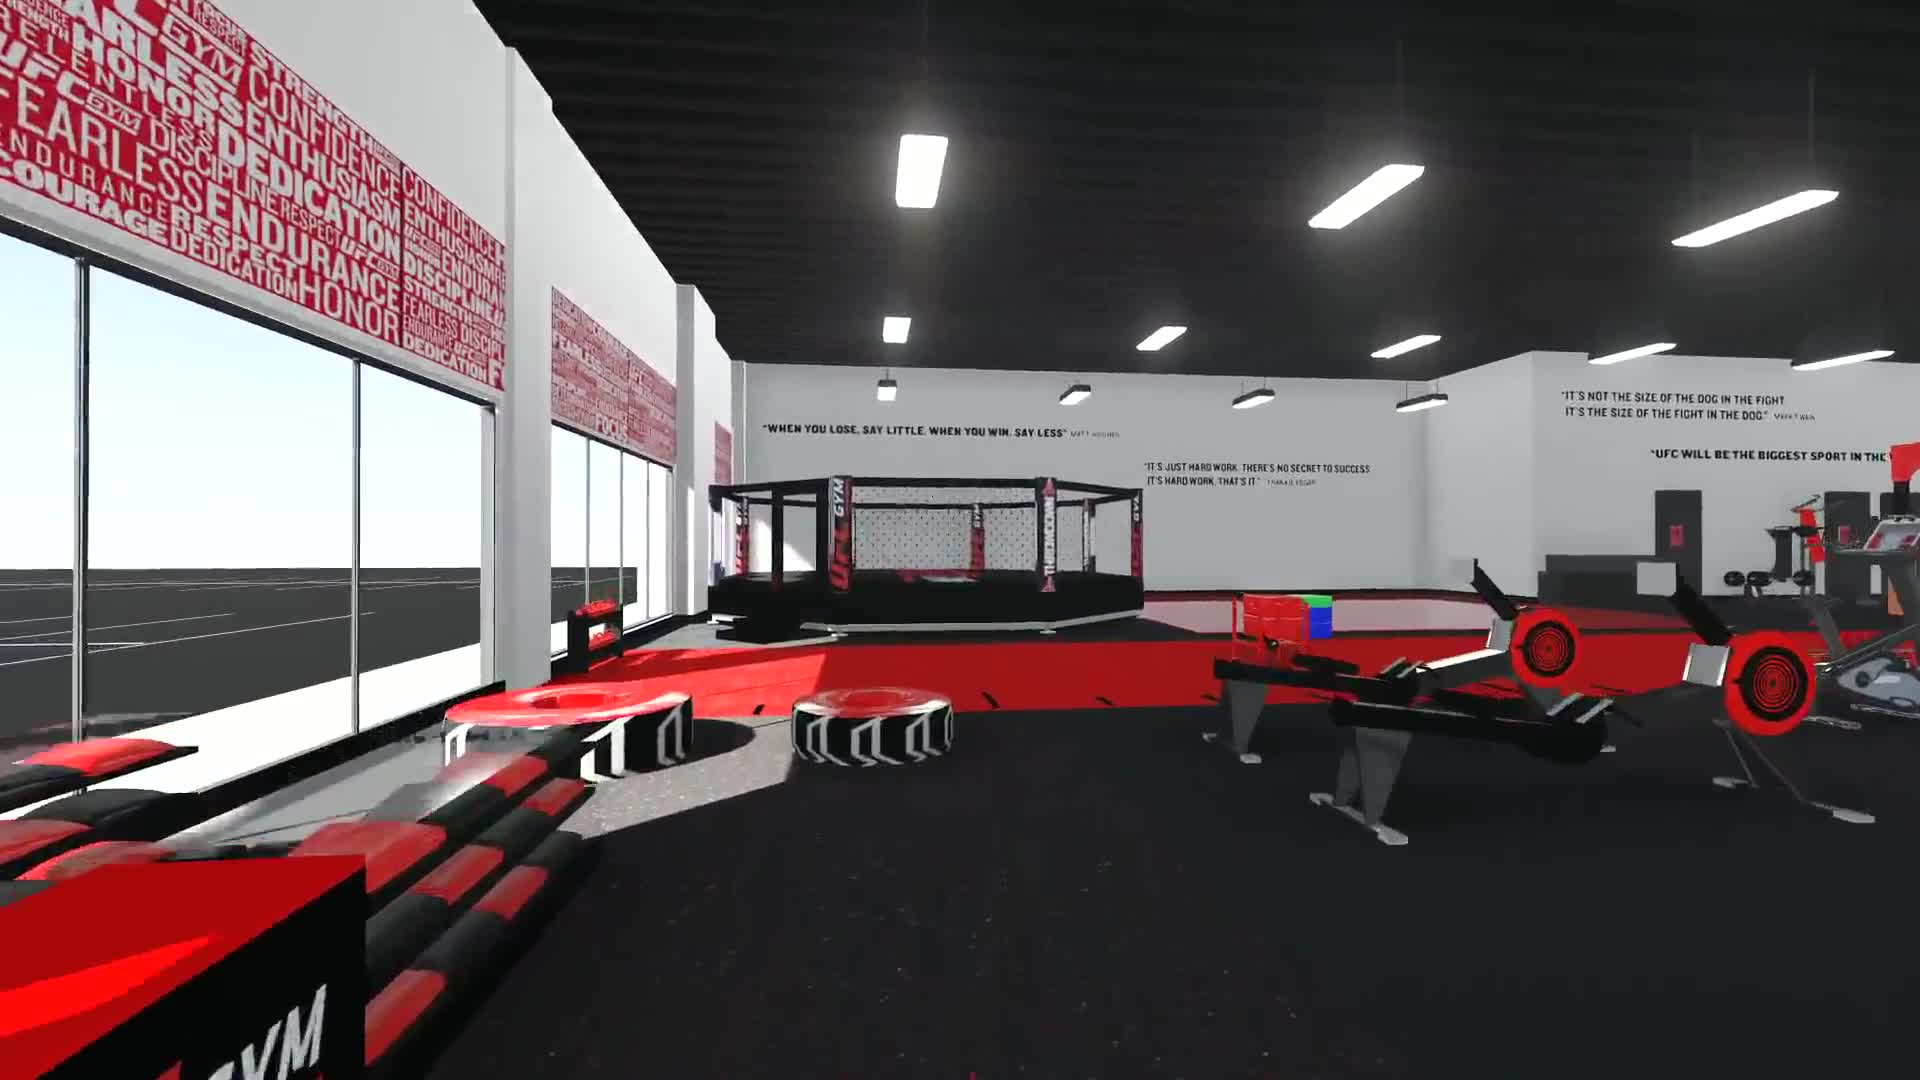 UFC Gym North Edmonton - Exercise, Health & Fitness Trainings & Gyms - 780-478-2928